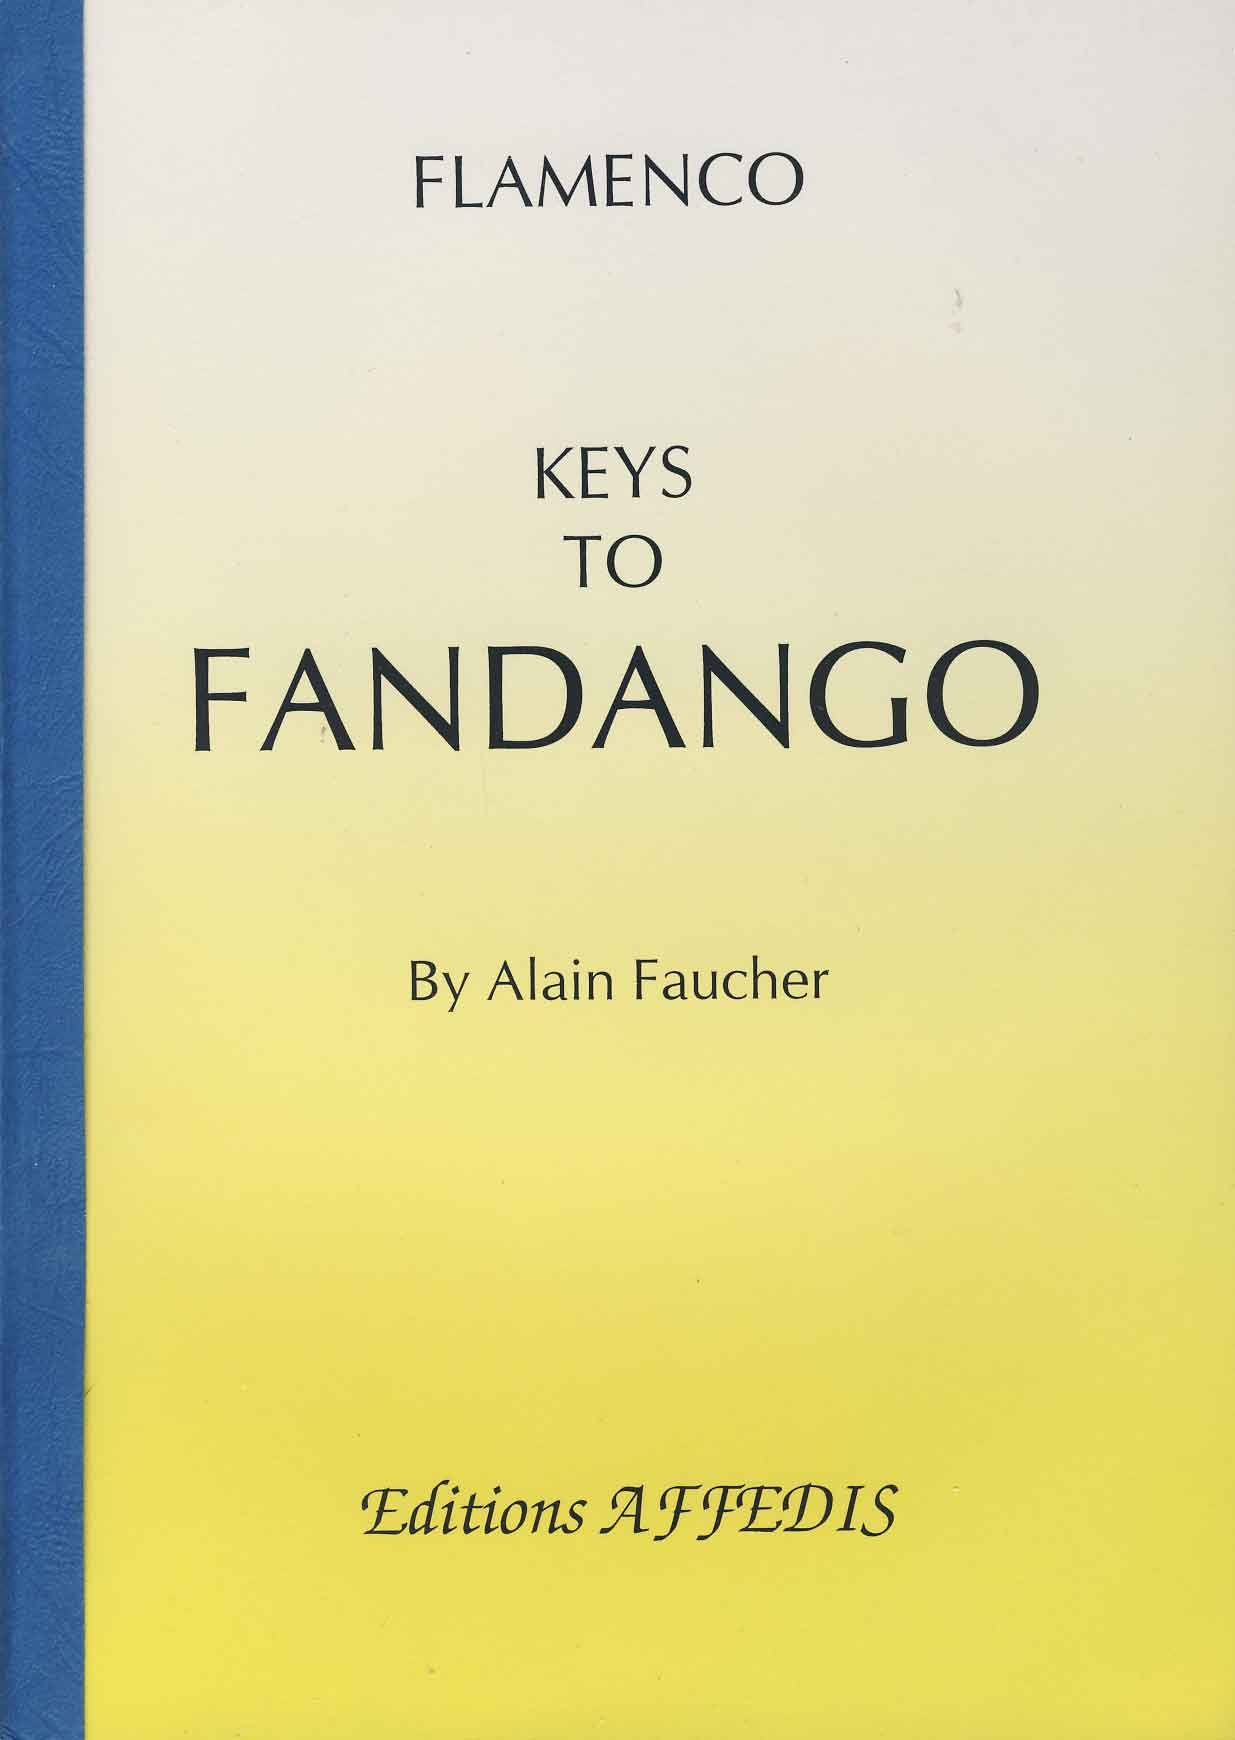 FAUCHER Alain - Flamenco, Keys to Fandango para Guitarra Tab ...